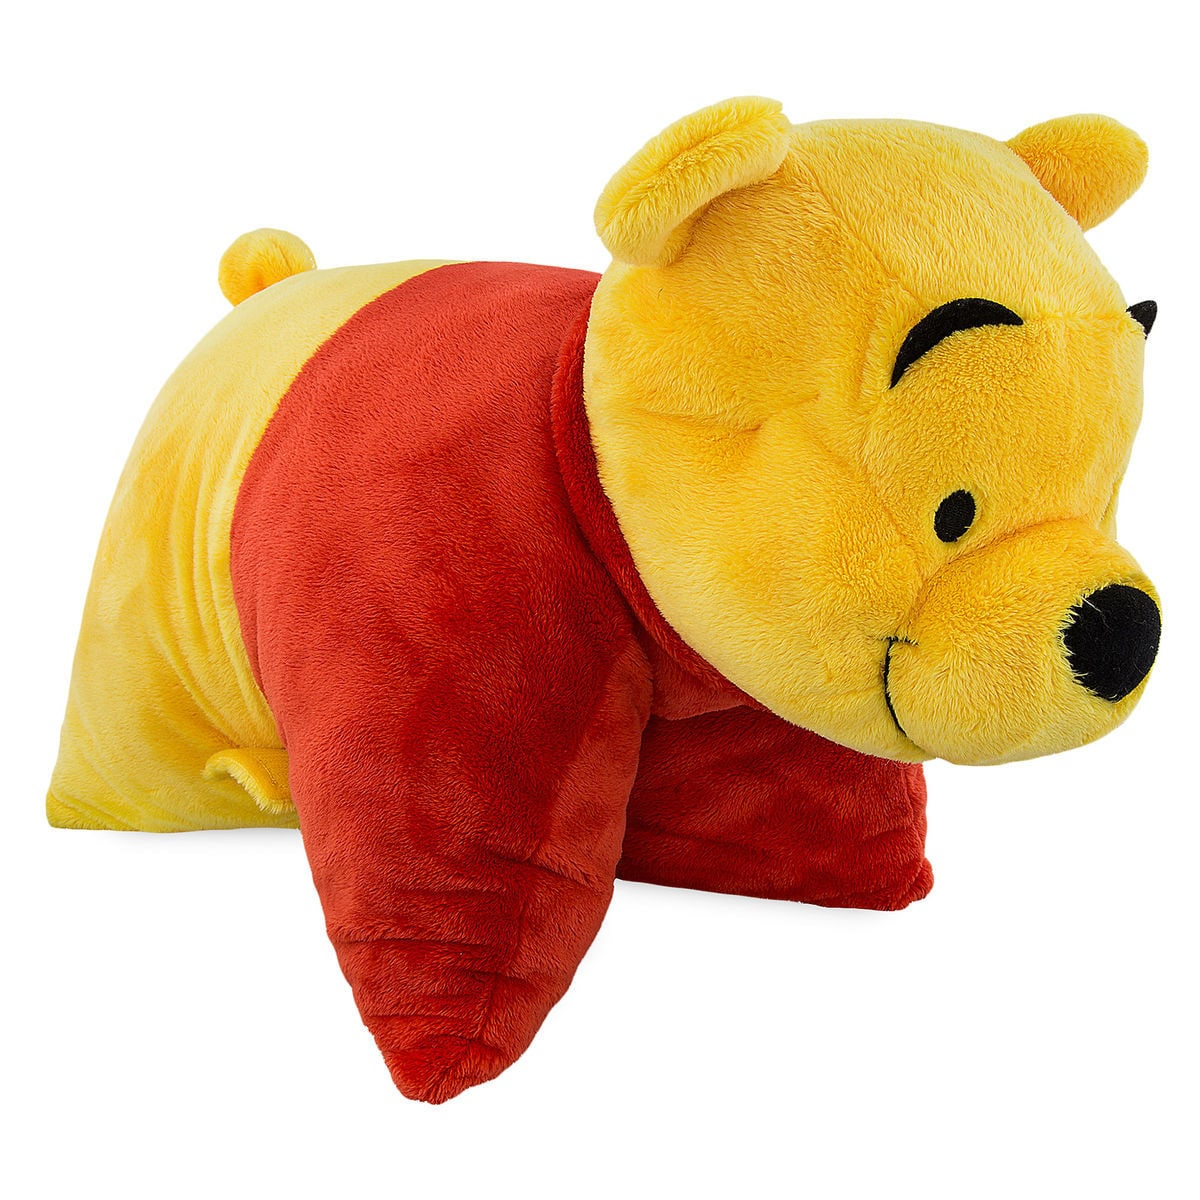 Winnie The Pooh Plush Pillow Shopdisney